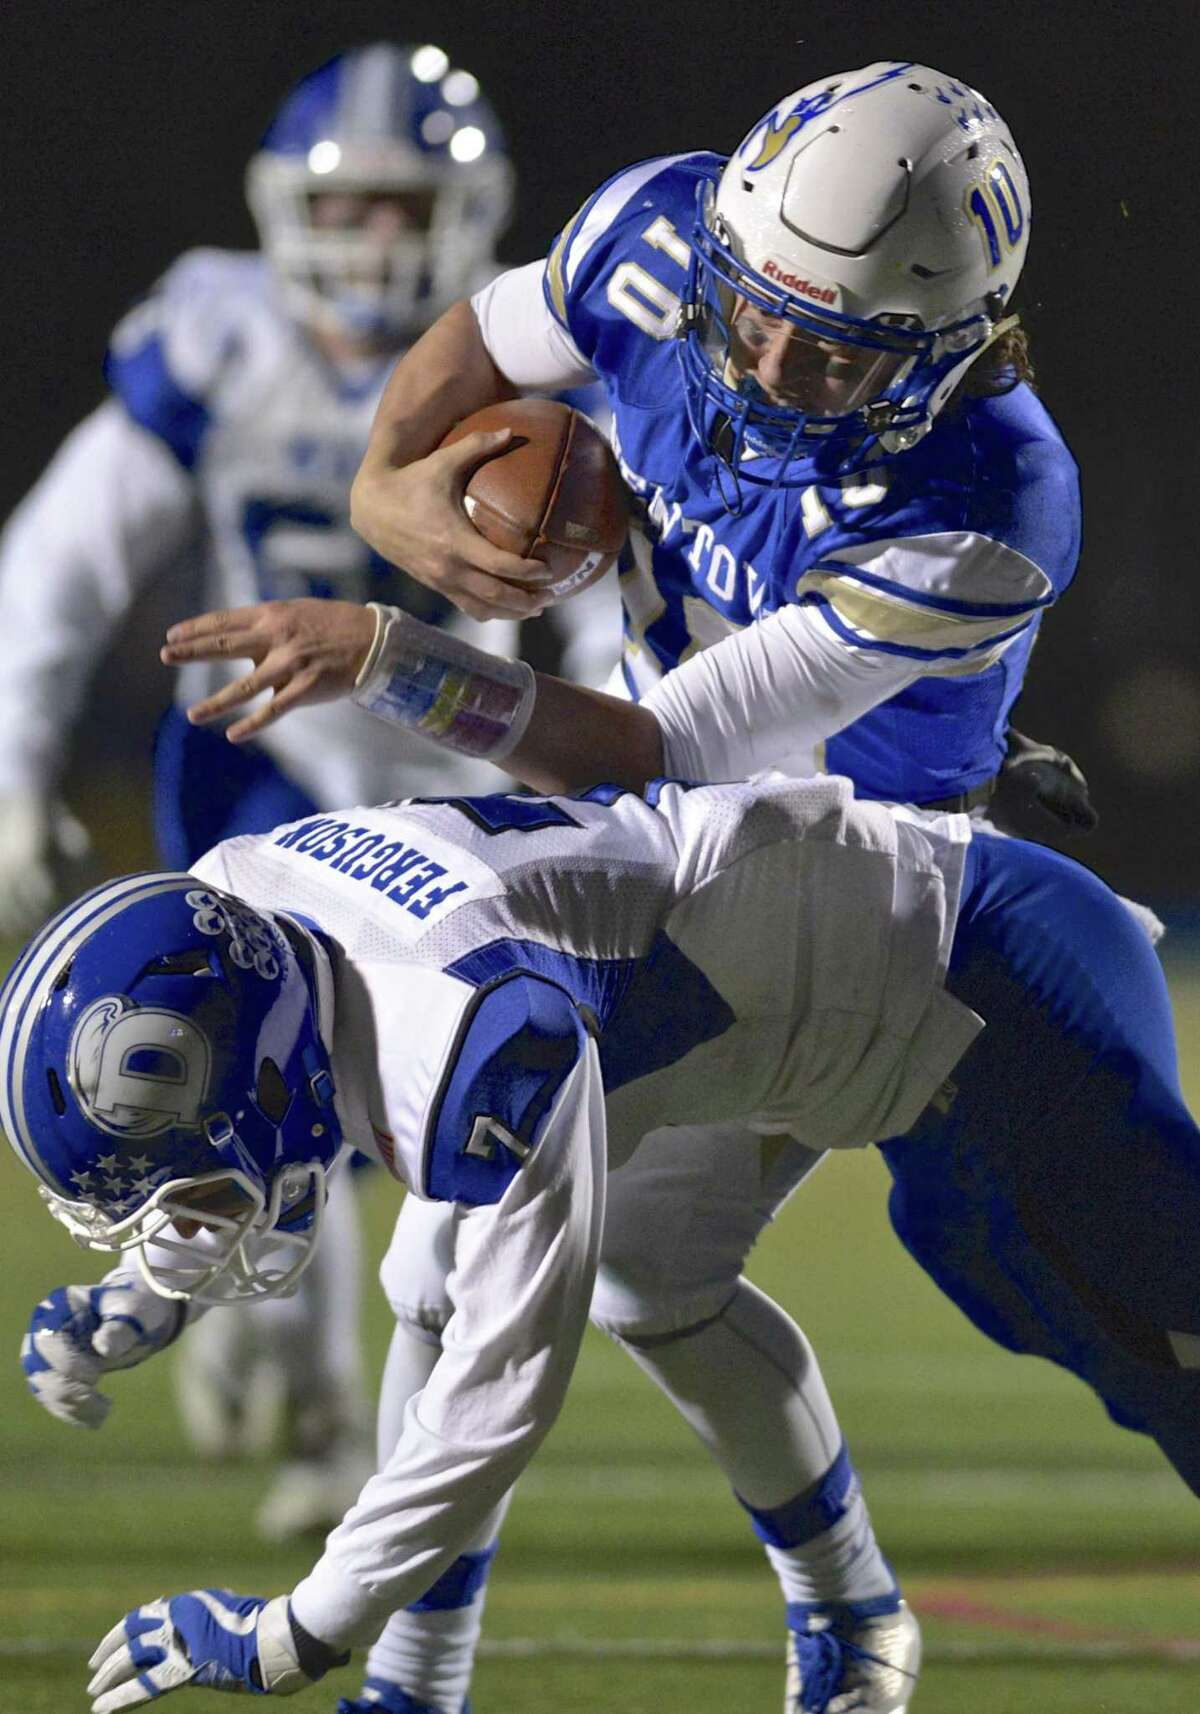 Newtown quarterback Luke Melillo (10) runs into Darien's Bruce Ferguson (7) as he scrambles out of the backfield and gains enough yardage to get a first-and-goal.